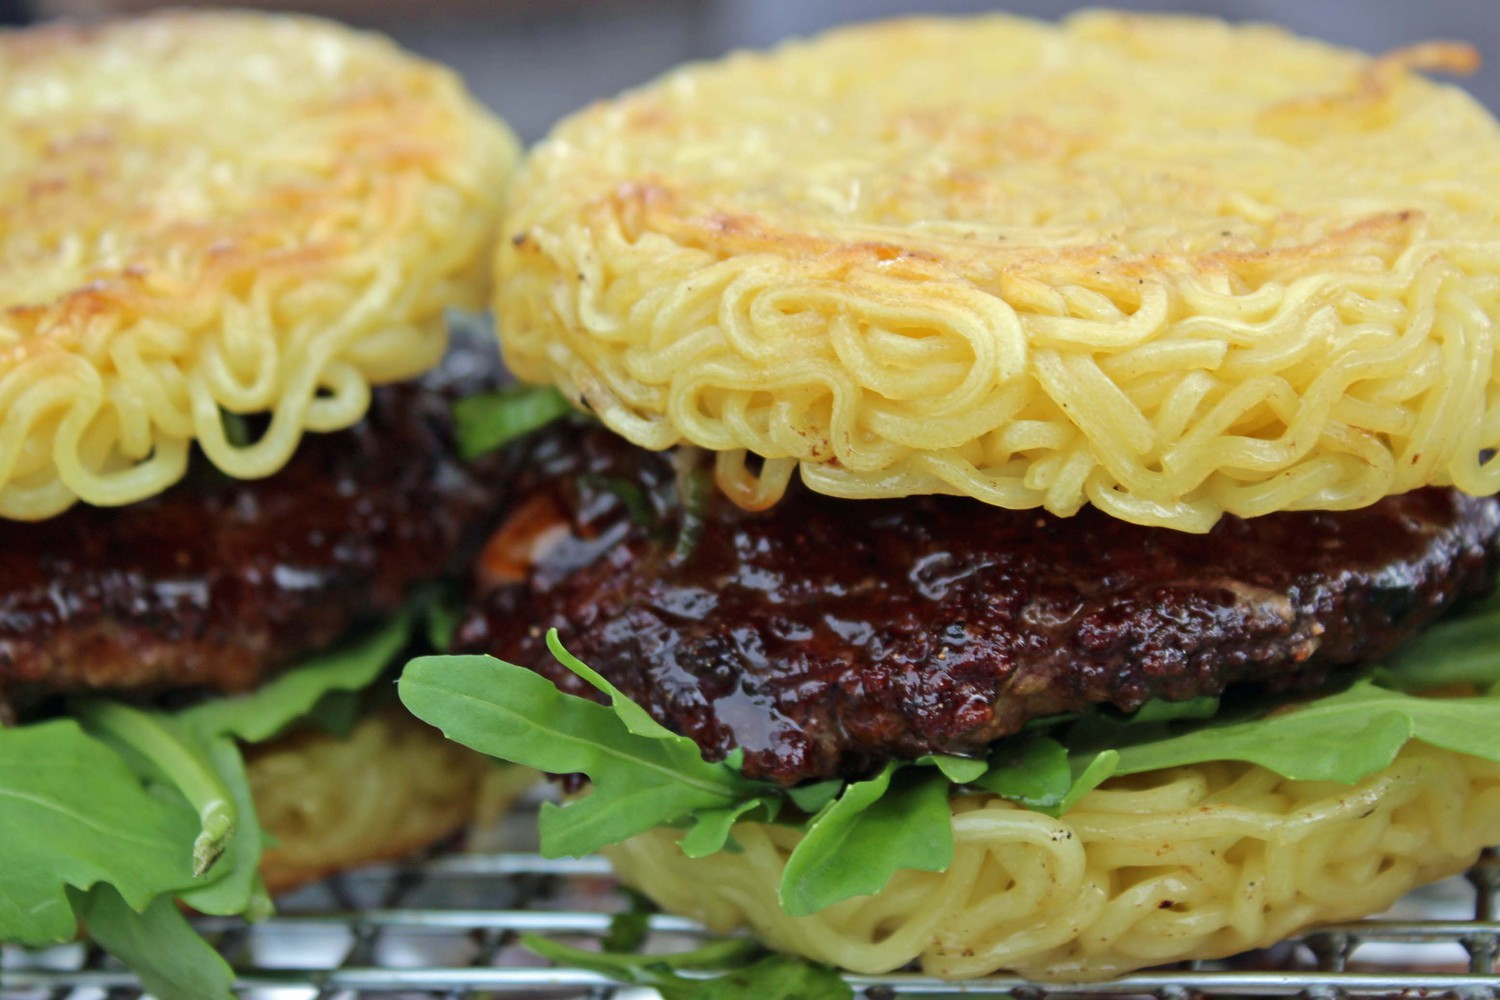 Ramen Burger | From the ramen burger stand at Smorgasburg in Williamsburg, Brooklyn